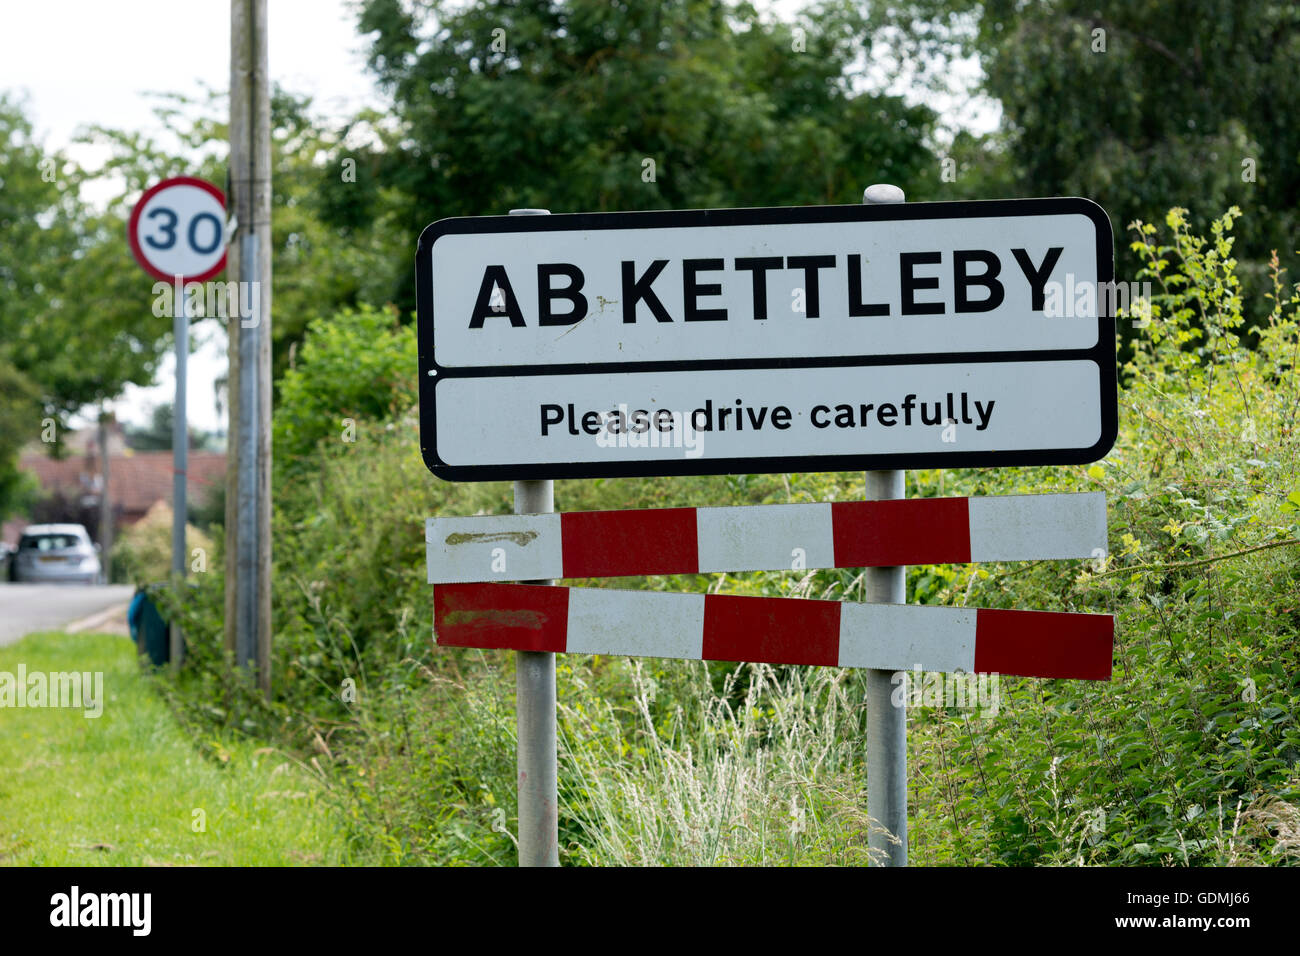 Ab Kettleby village sign, Leicestershire, England, UK - Stock Image